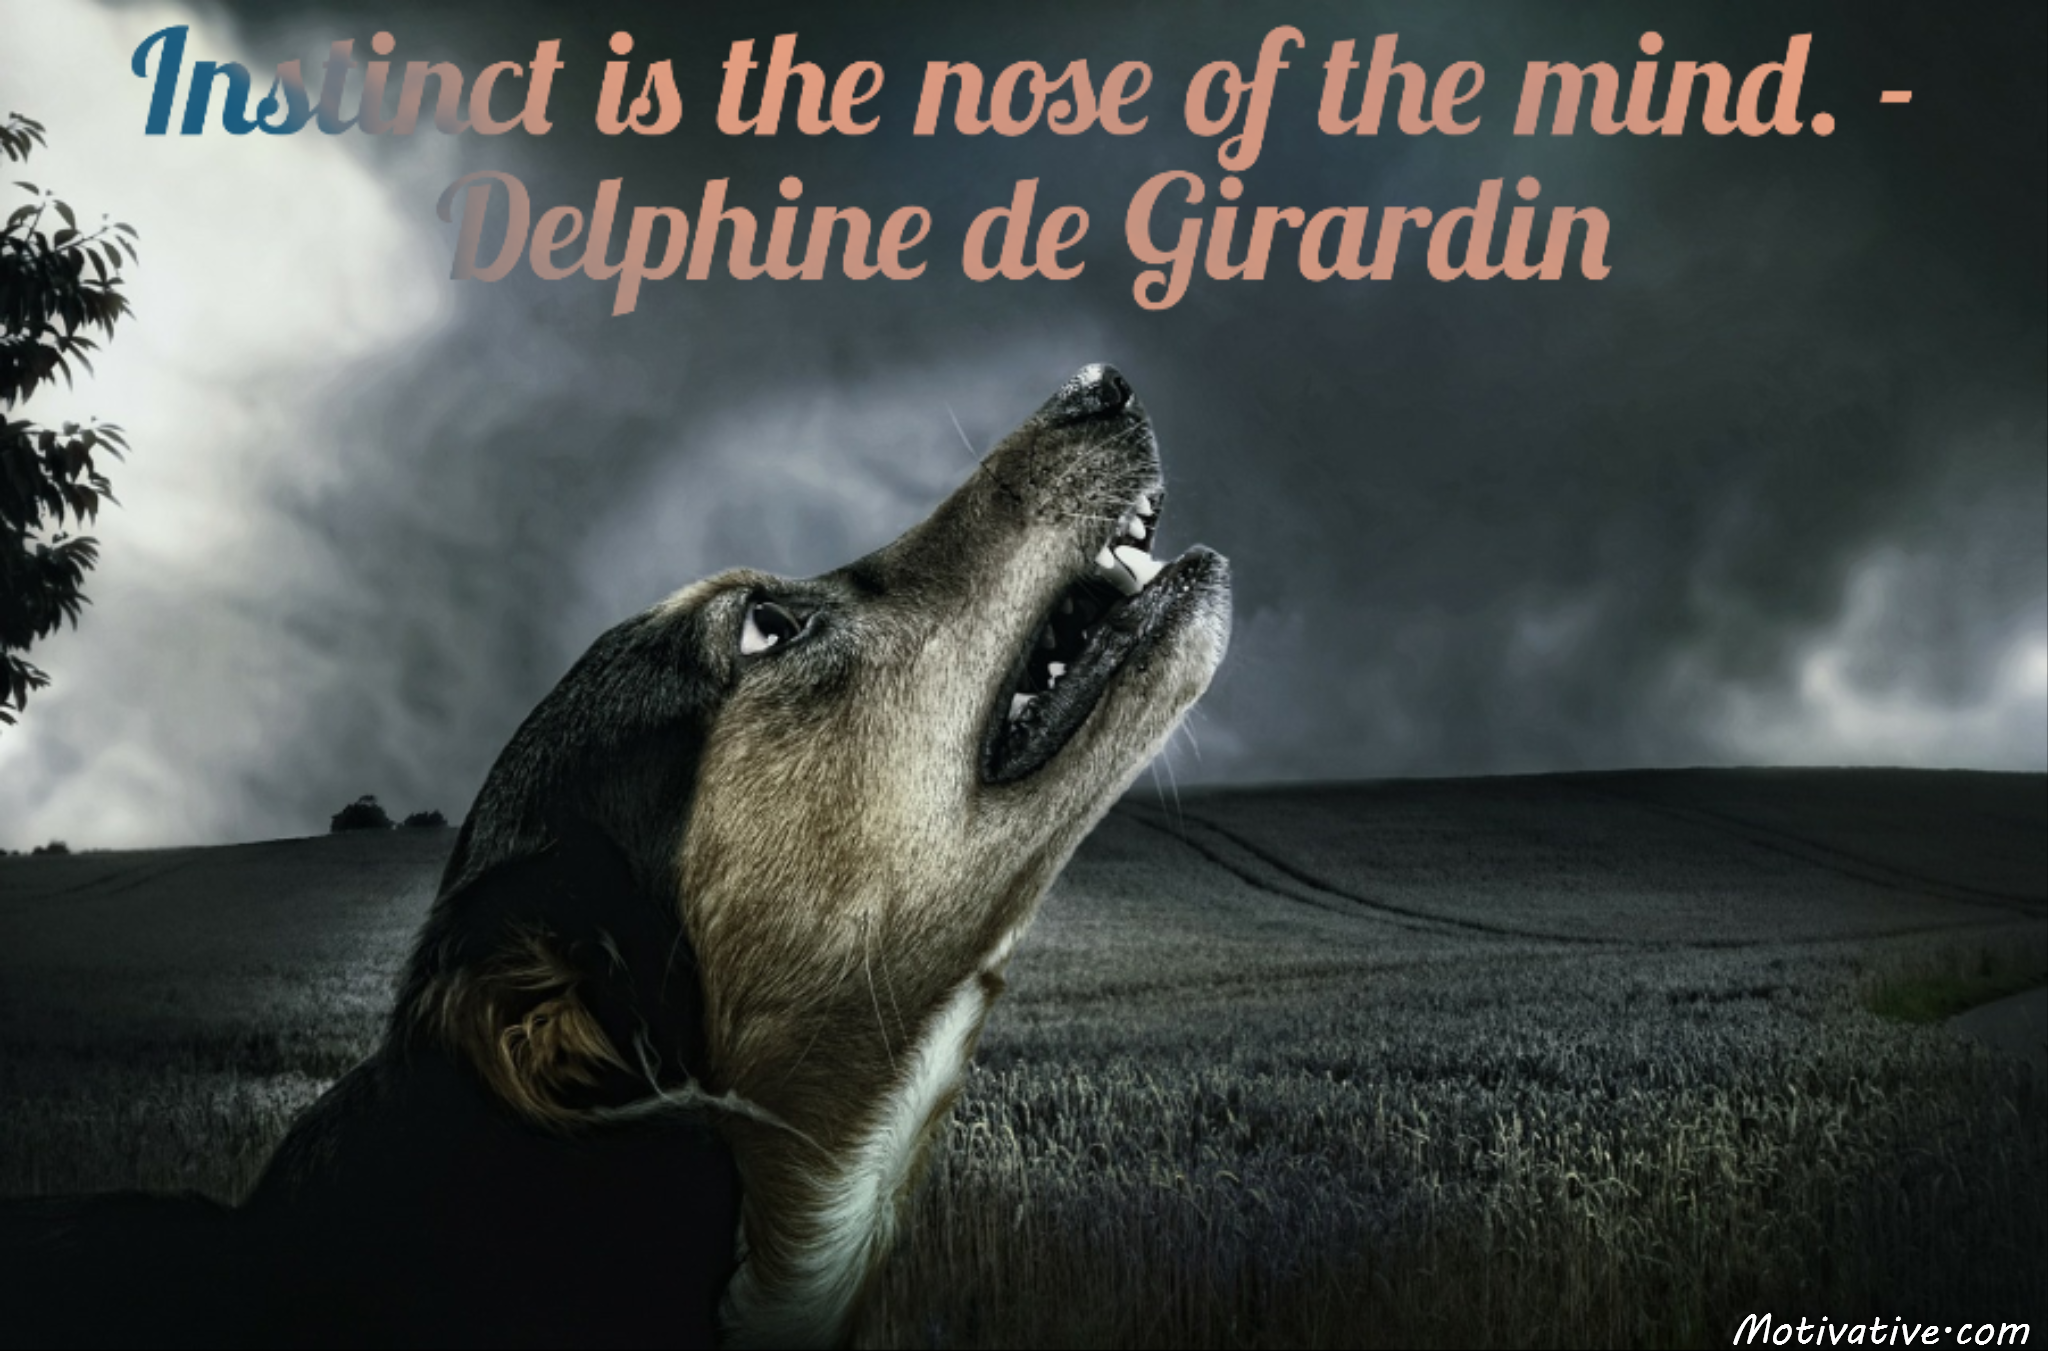 Instinct is the nose of the mind. – Delphine de Girardin